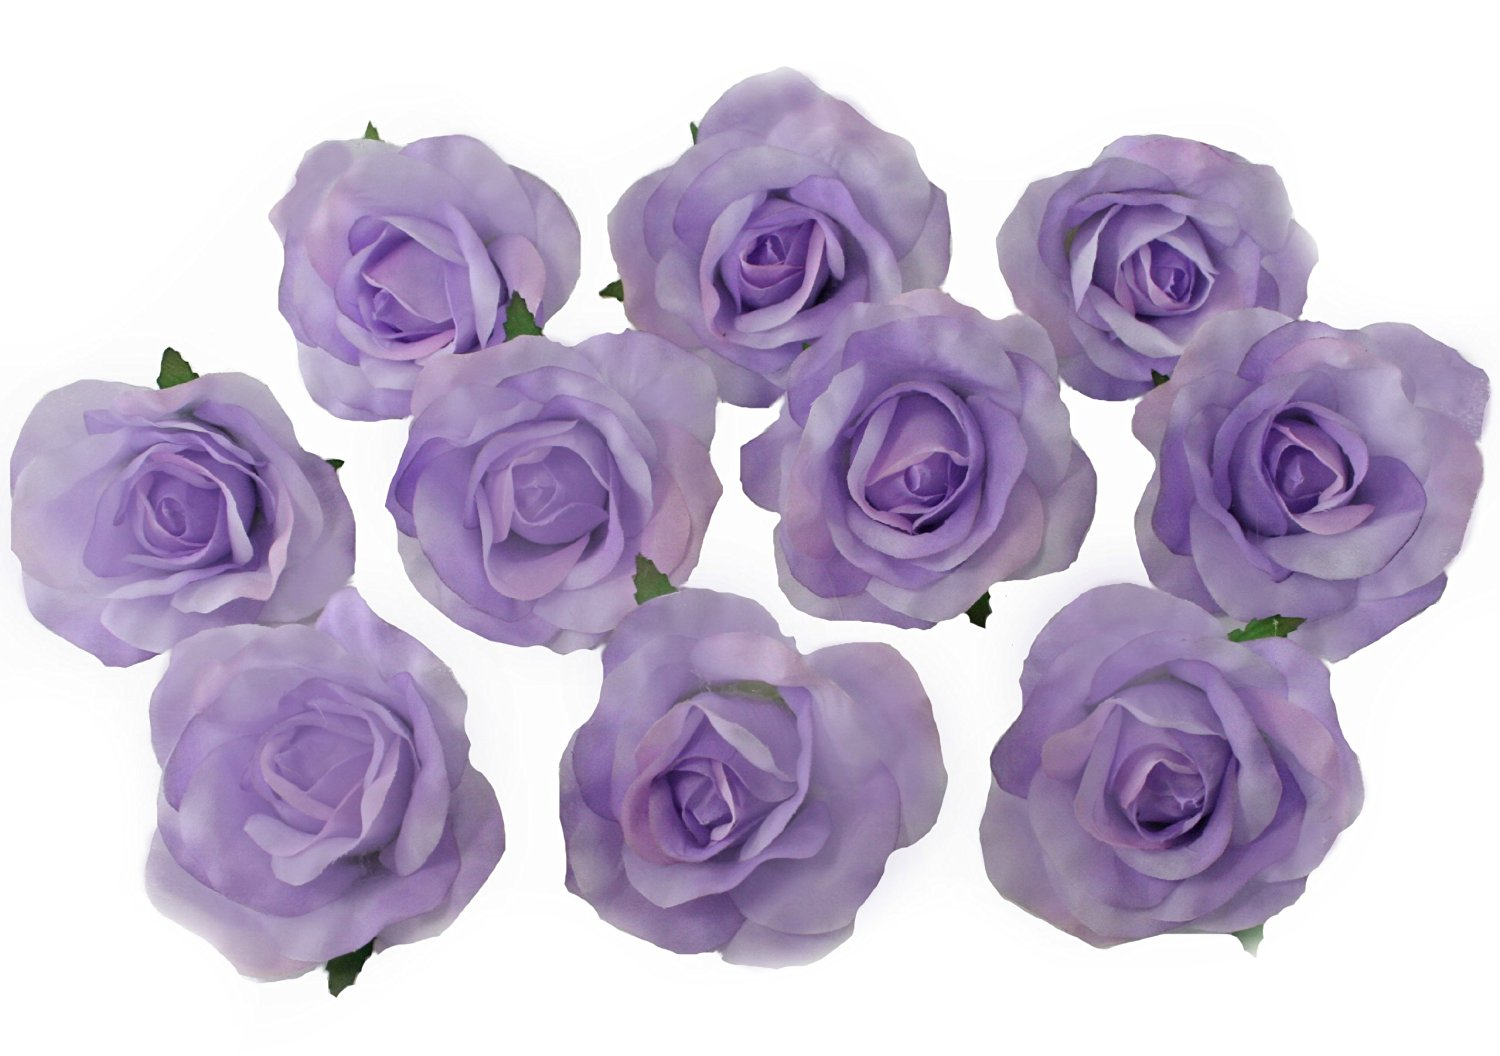 Cheap silk flowers lavender find silk flowers lavender deals on get quotations 10 lavender rose heads silk flower weddingreception table decorations bulk silk flowers izmirmasajfo